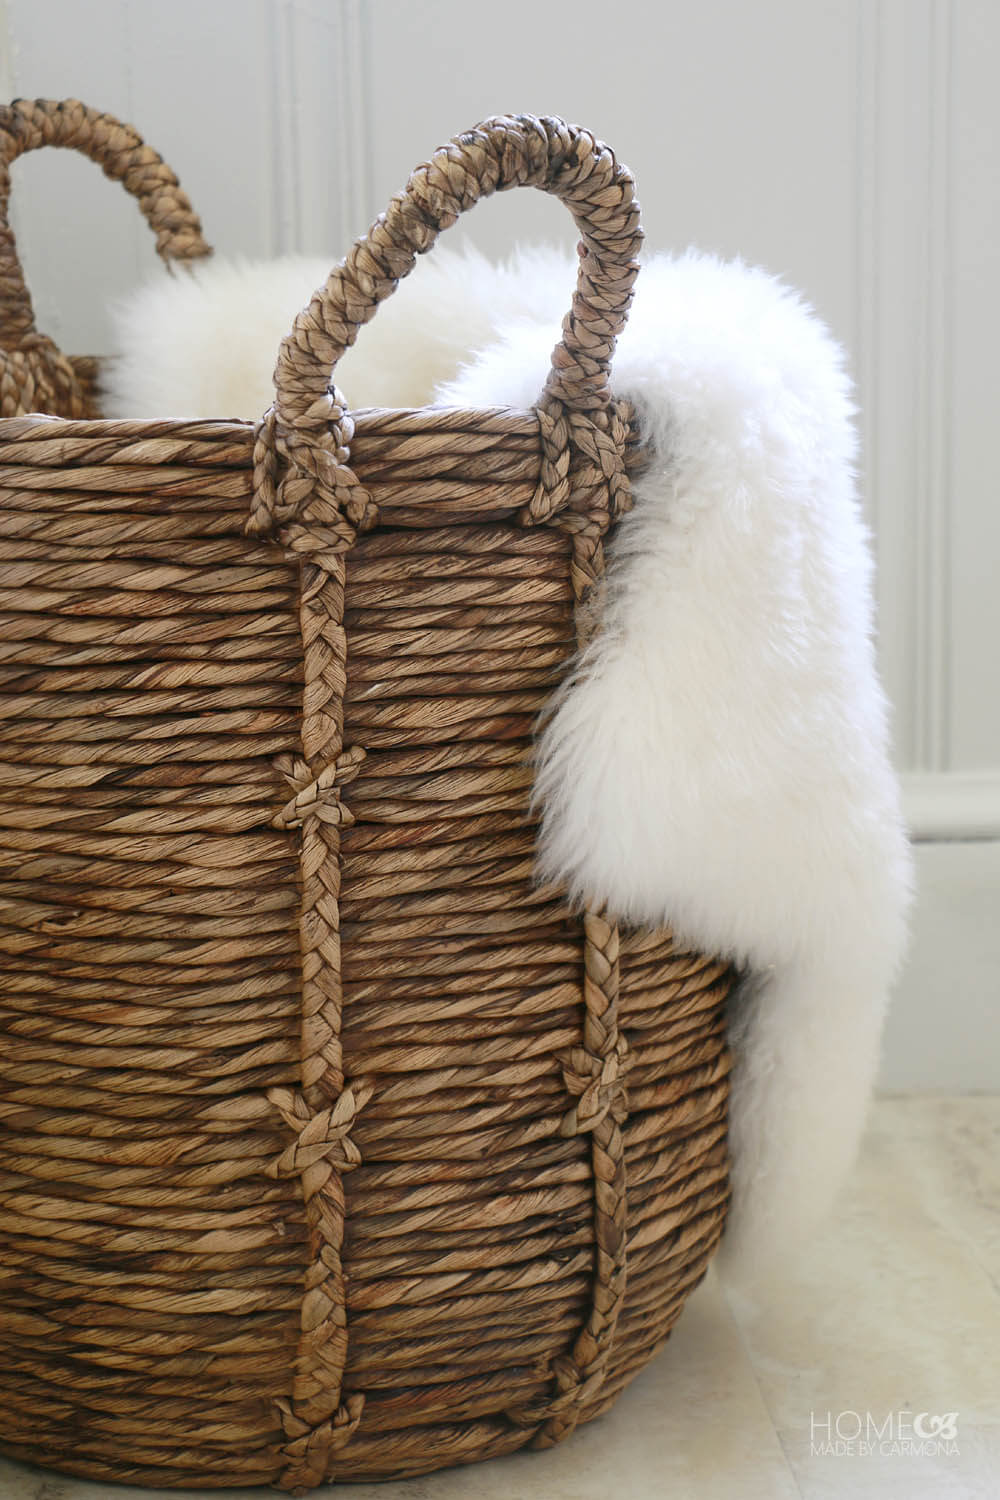 Basket with furs